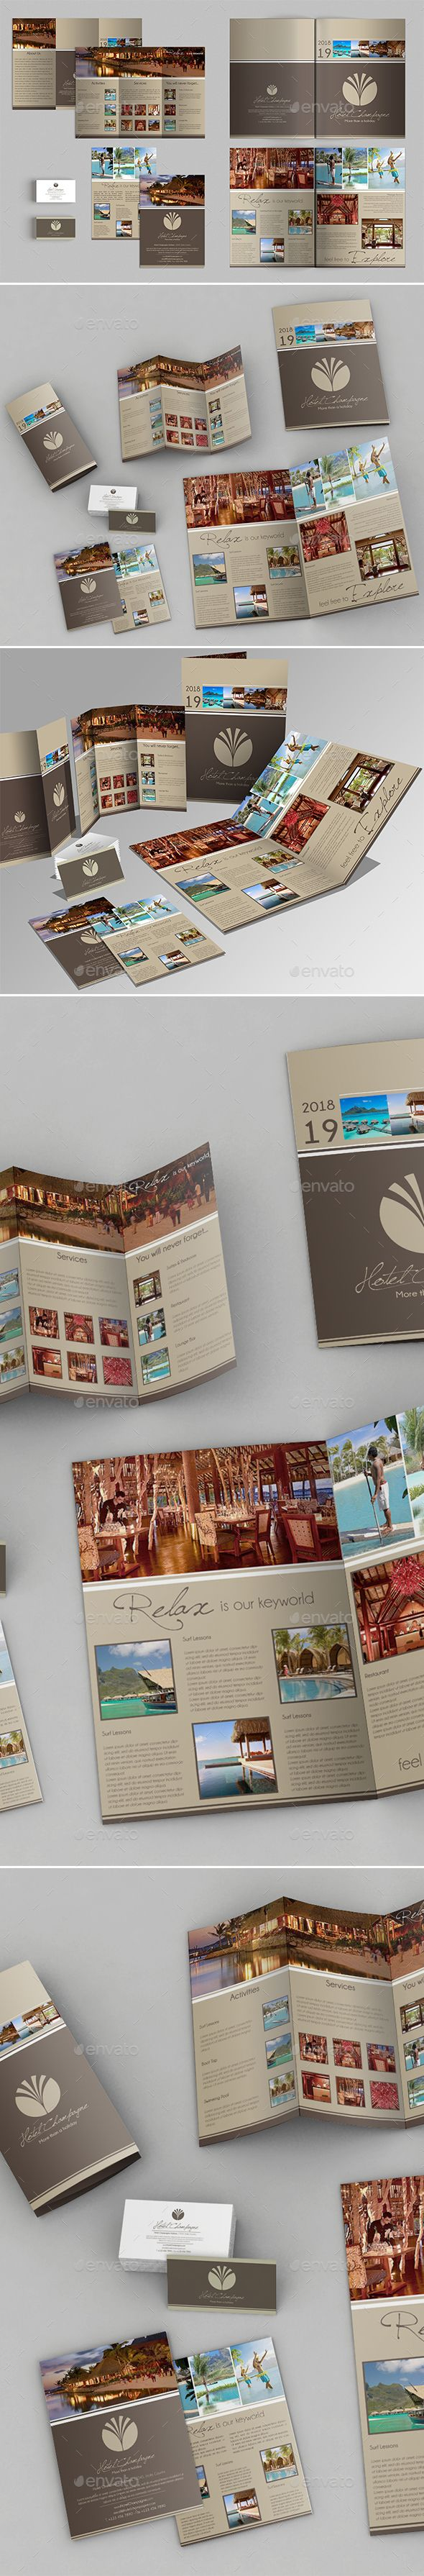 A3 + A4 Trifold Brochure + Business Card | Brochures, Corporate ...